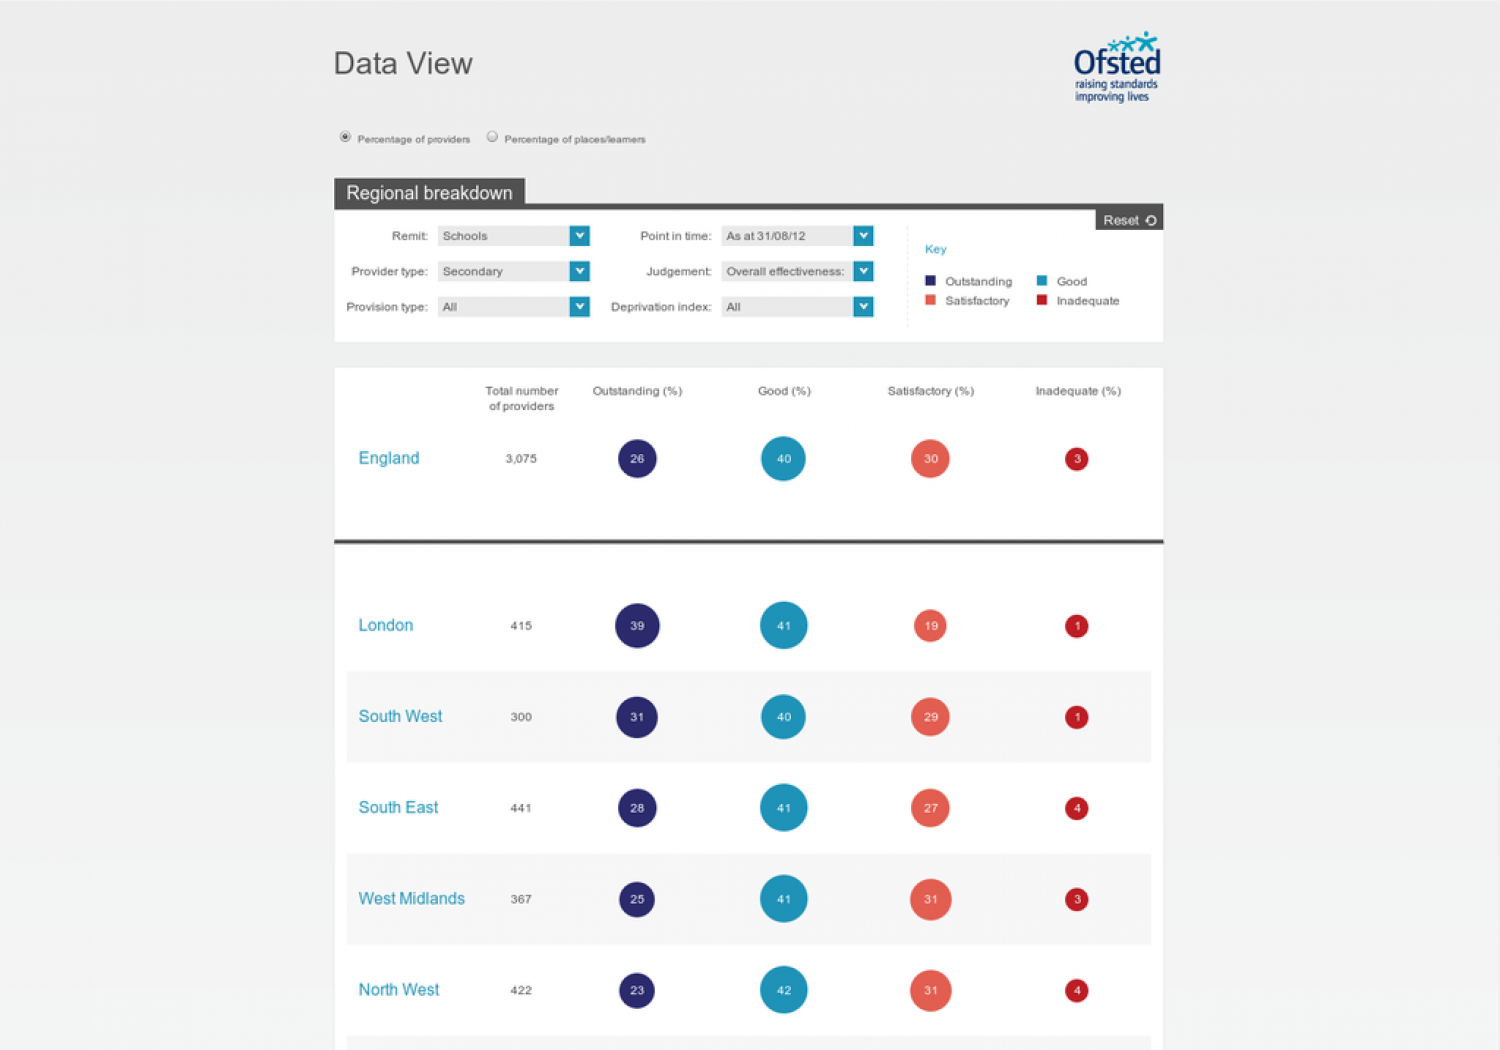 Ofsted Data View Infographic